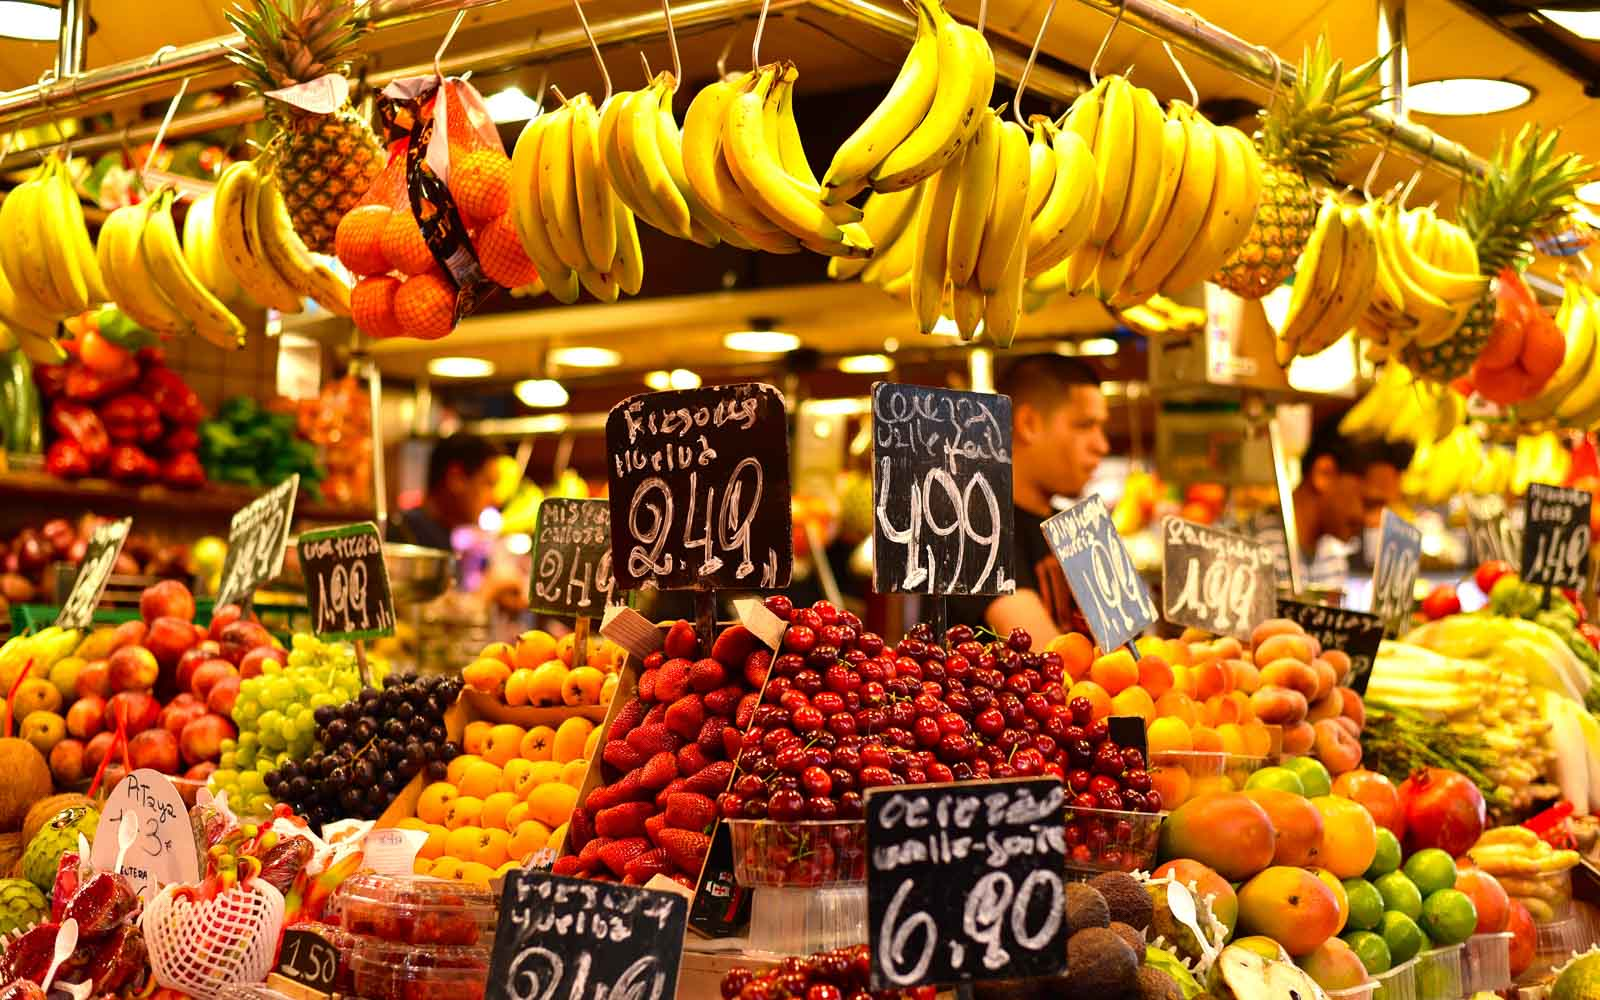 a fruit stand at boqueria market barcelona